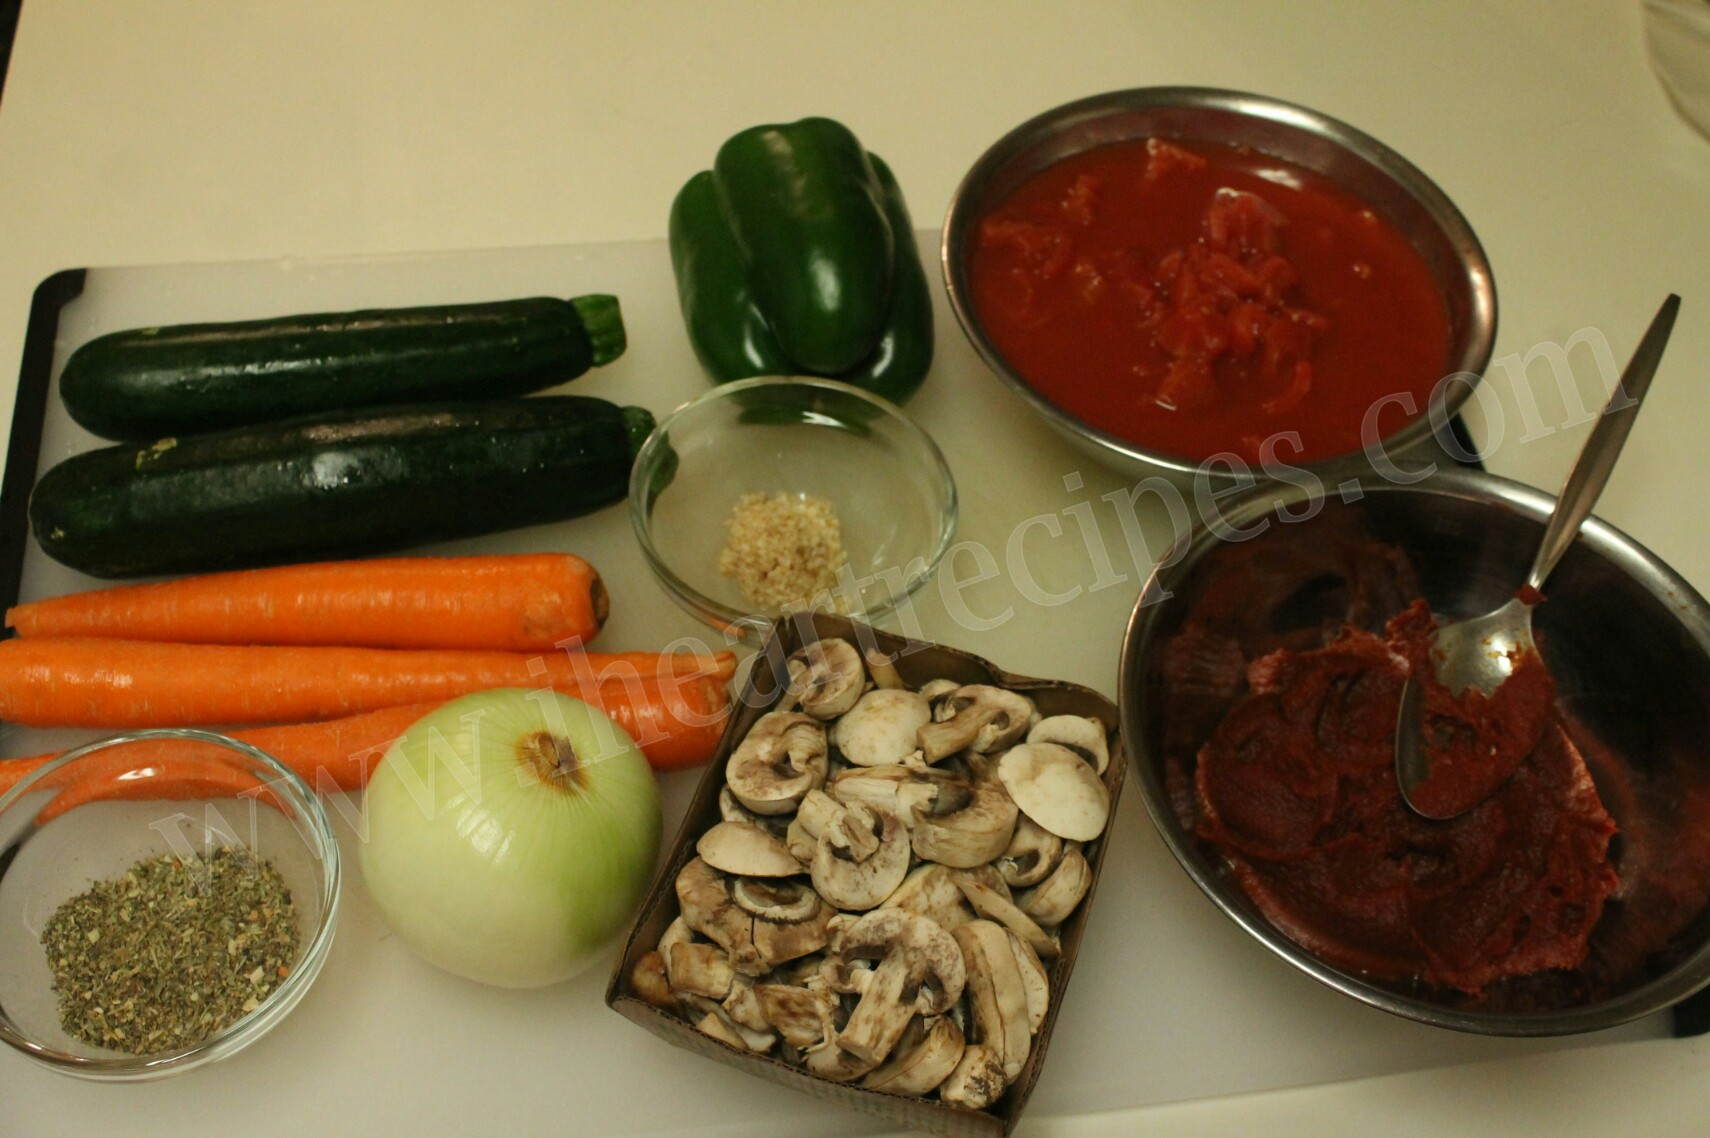 Homemade Vegetable Marinara Sauce is chockfull of flavor!